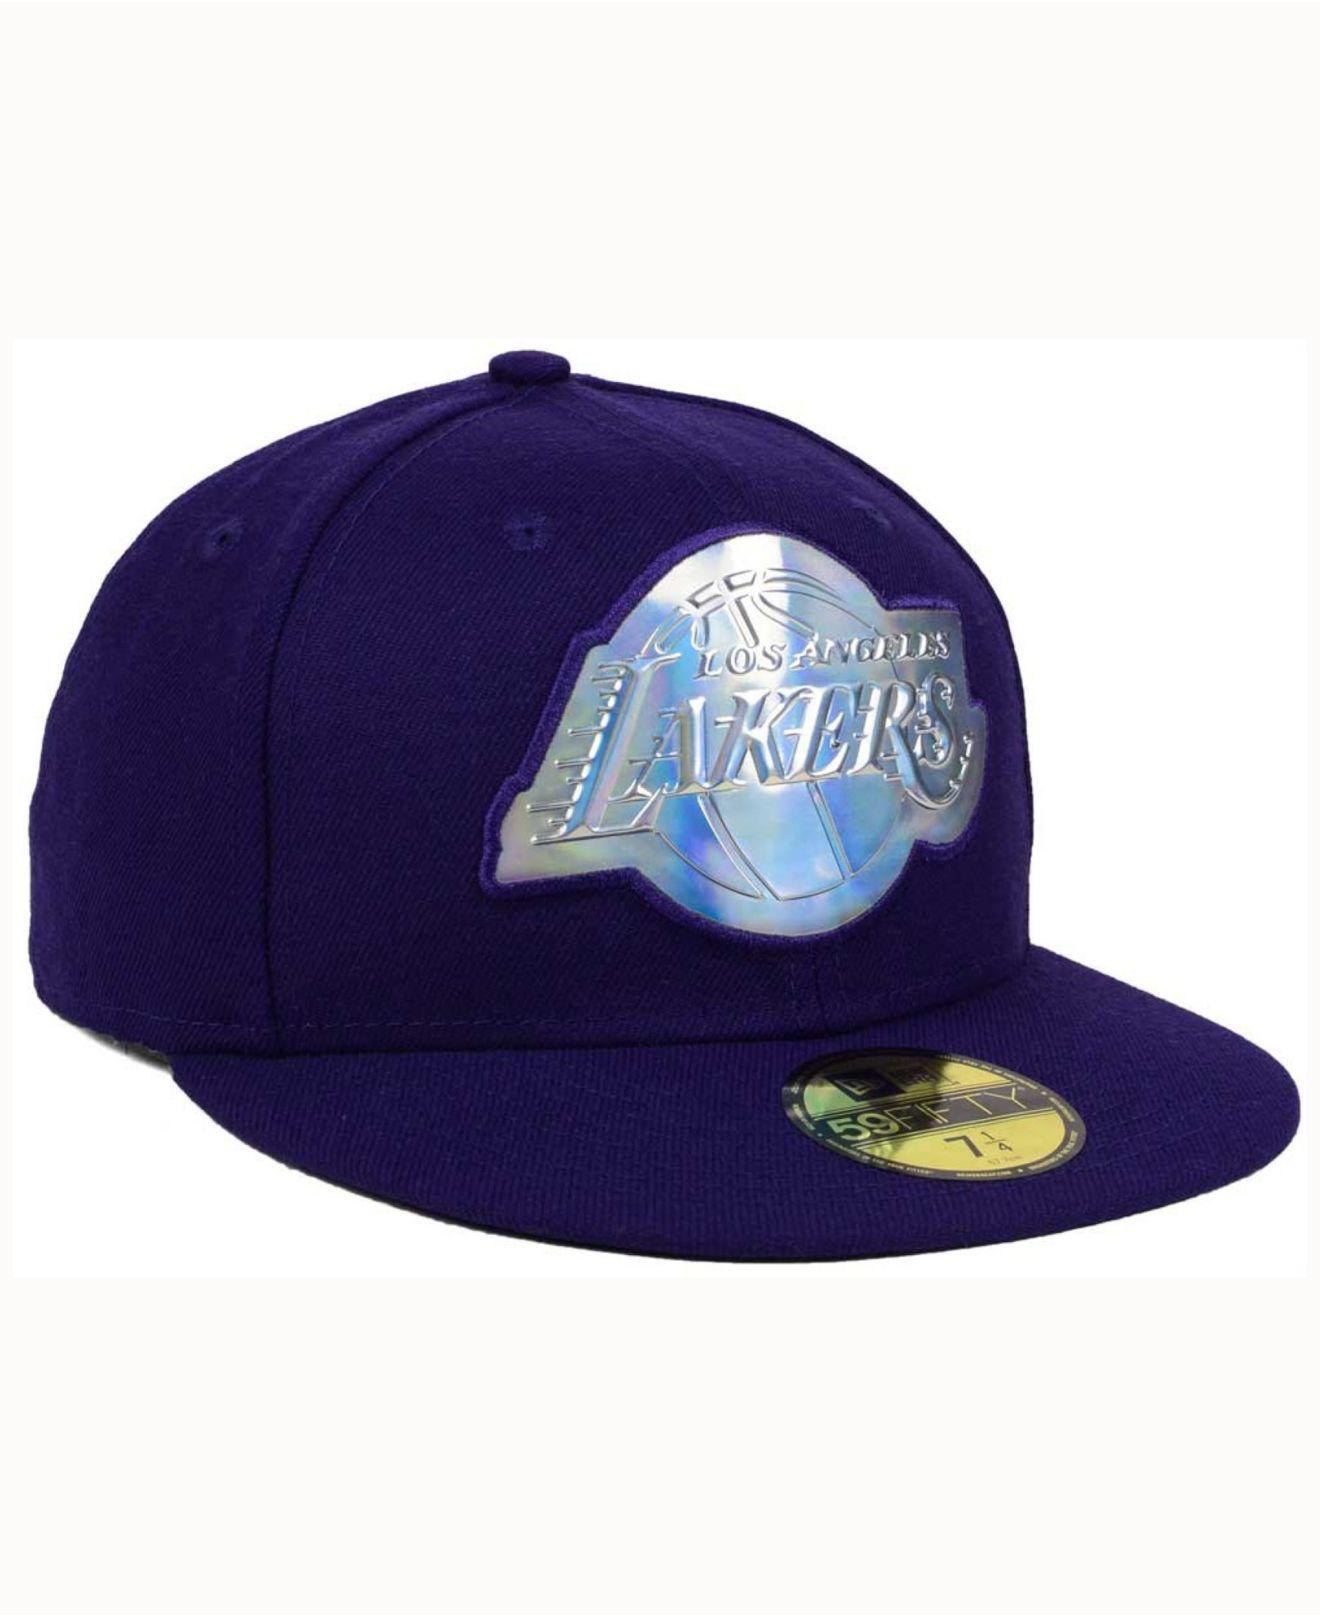 innovative design 2a12a fe023 coupon code mitchell ness nba iridescent slate snapback basketball indiana  pacers slate grey product 47603 37a9e  closeout lyst ktz los angeles lakers  ...